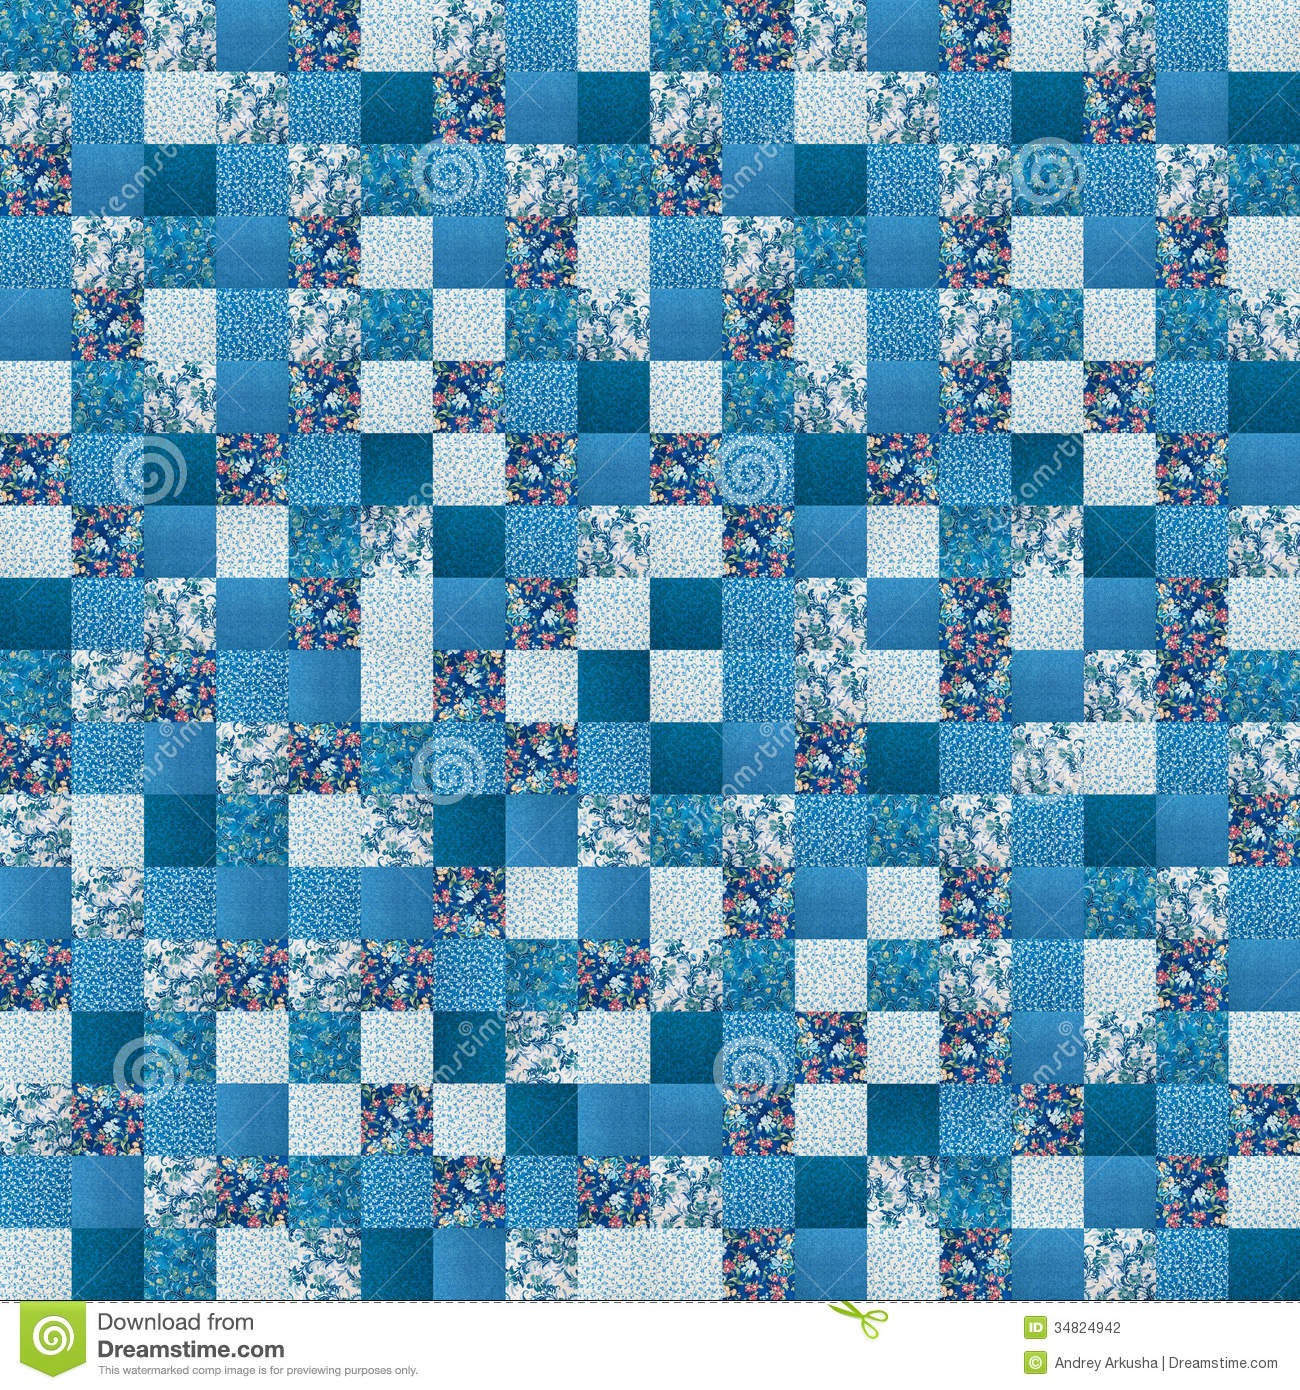 Crazy Quilt Pattern Fabric : Crazy quilt stock photo. Image of blue, coloring, quilt - 34824942